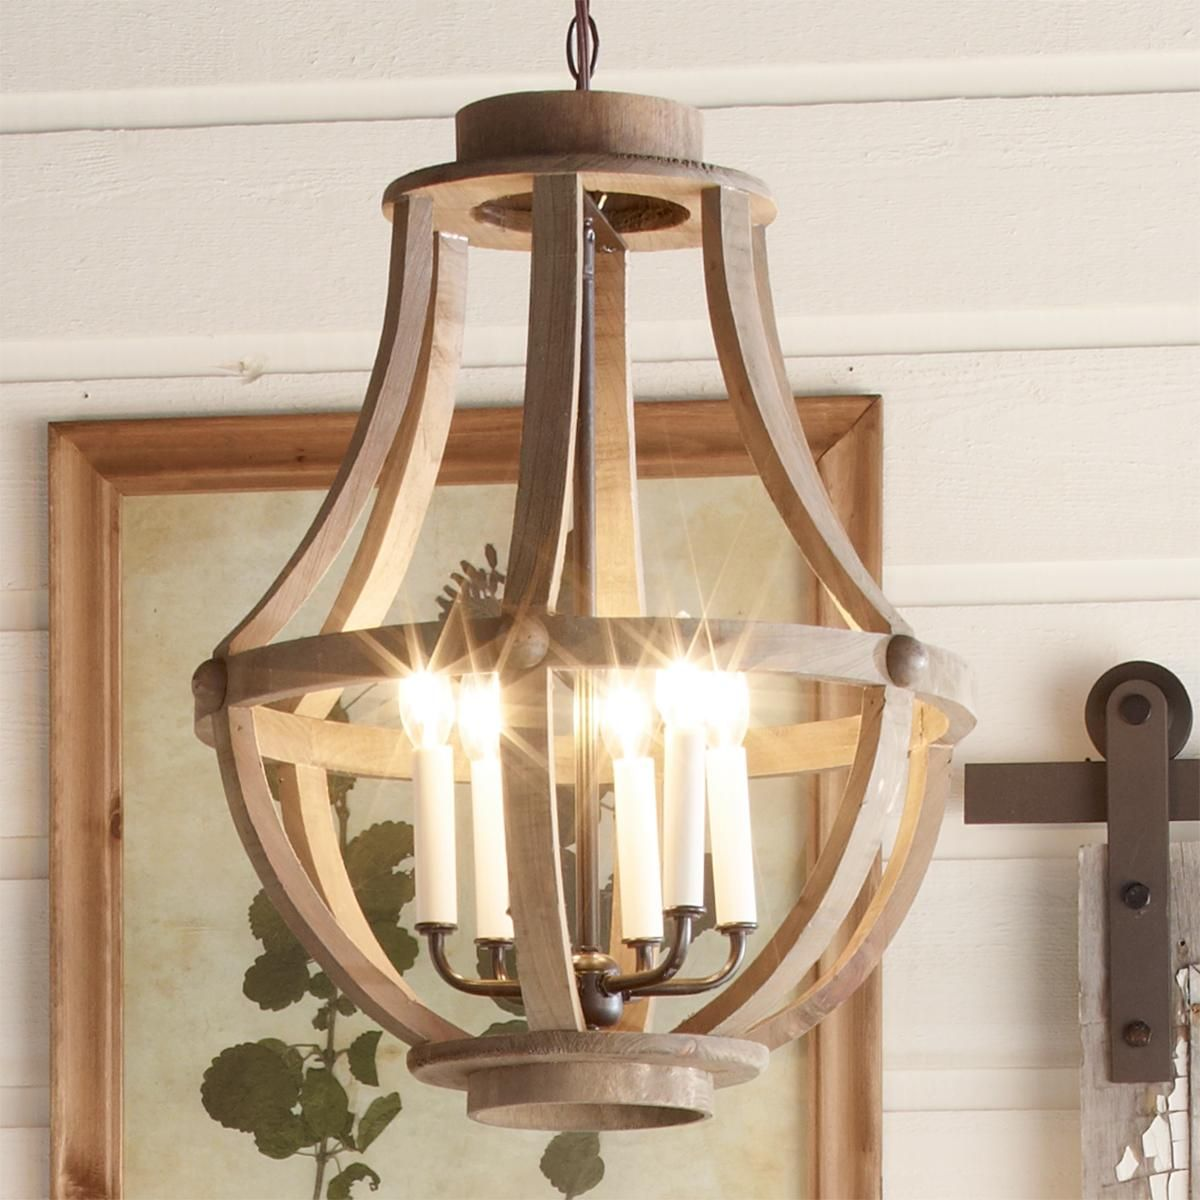 10 Favorite Wall Sconces Hardwire Plug In By Tidbits Twine